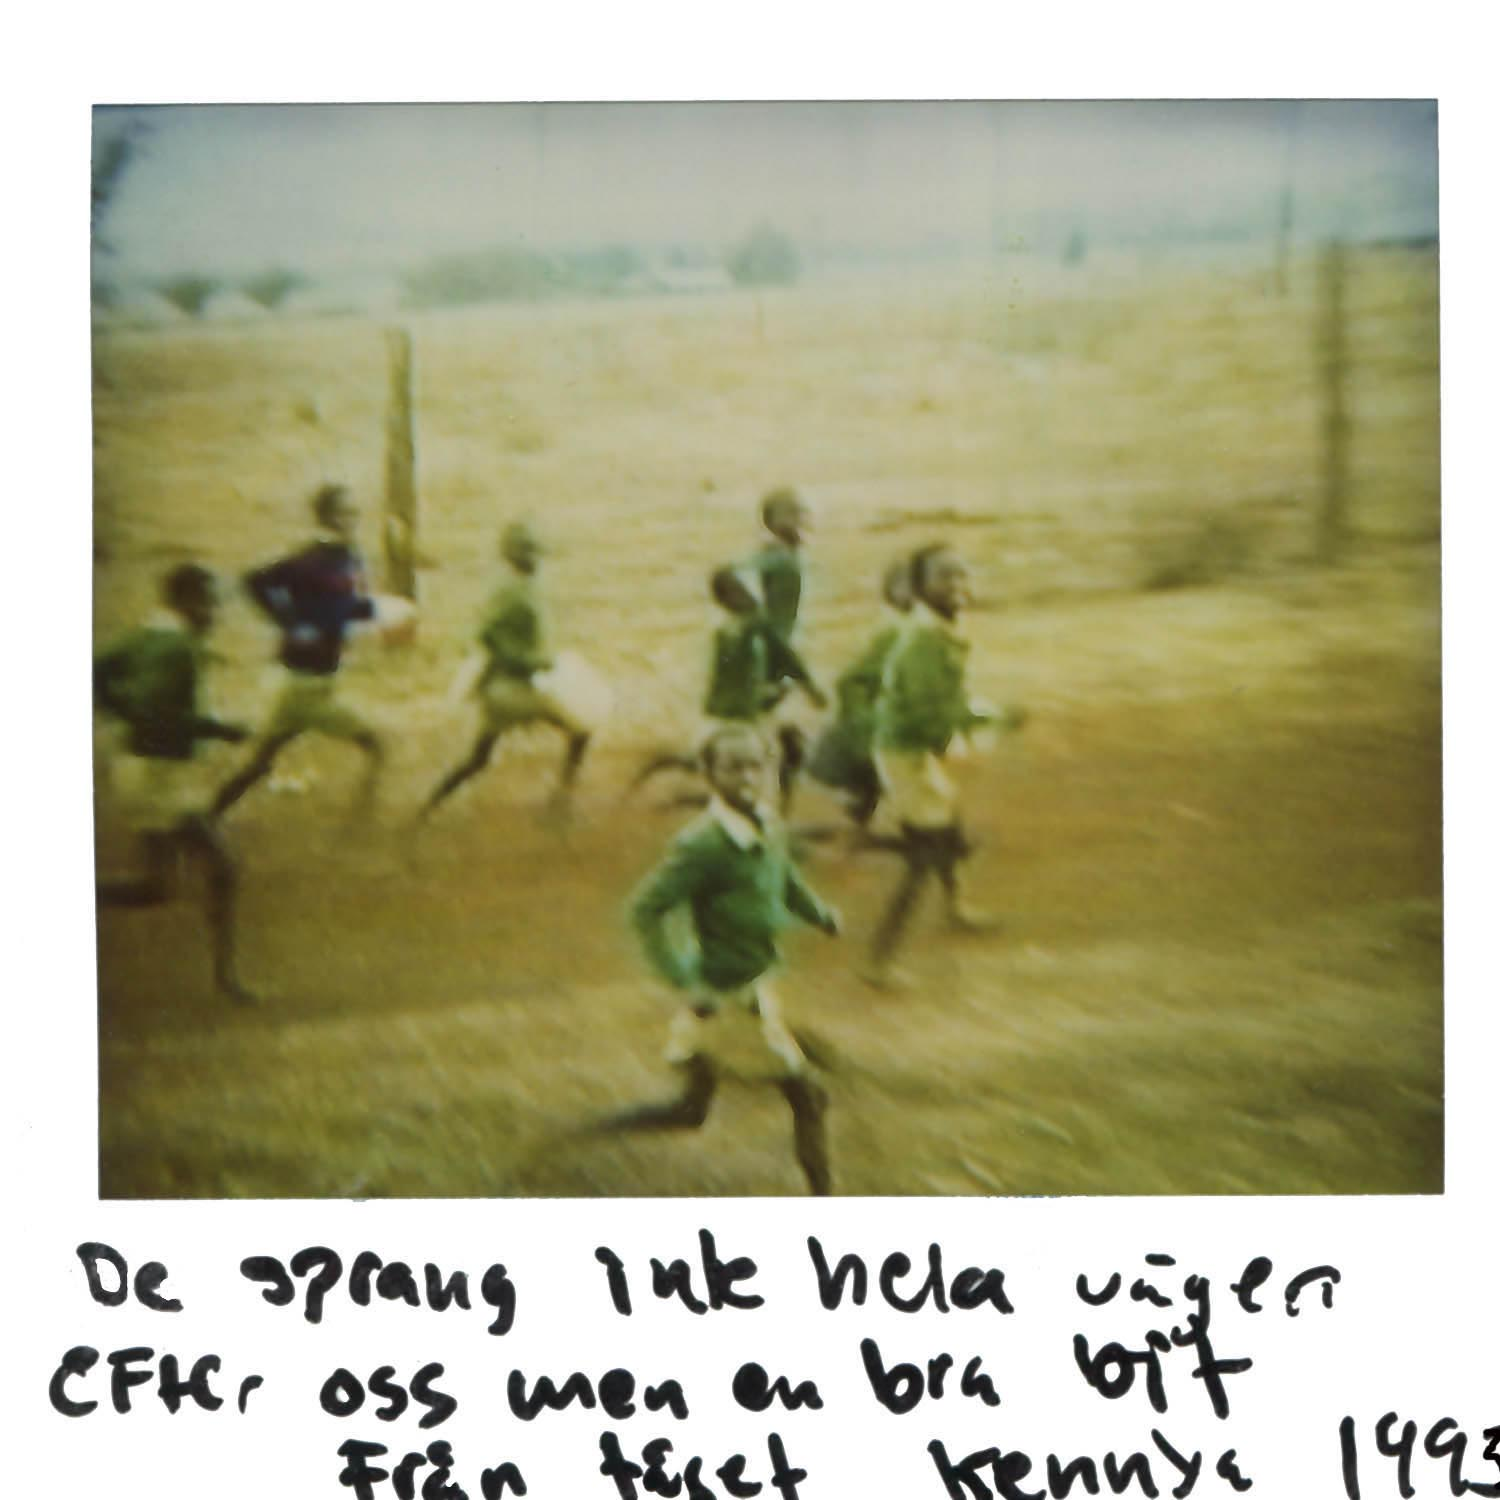 They run after us (not all the way) but a long way .... Pics taken from the train in Kenya 1993